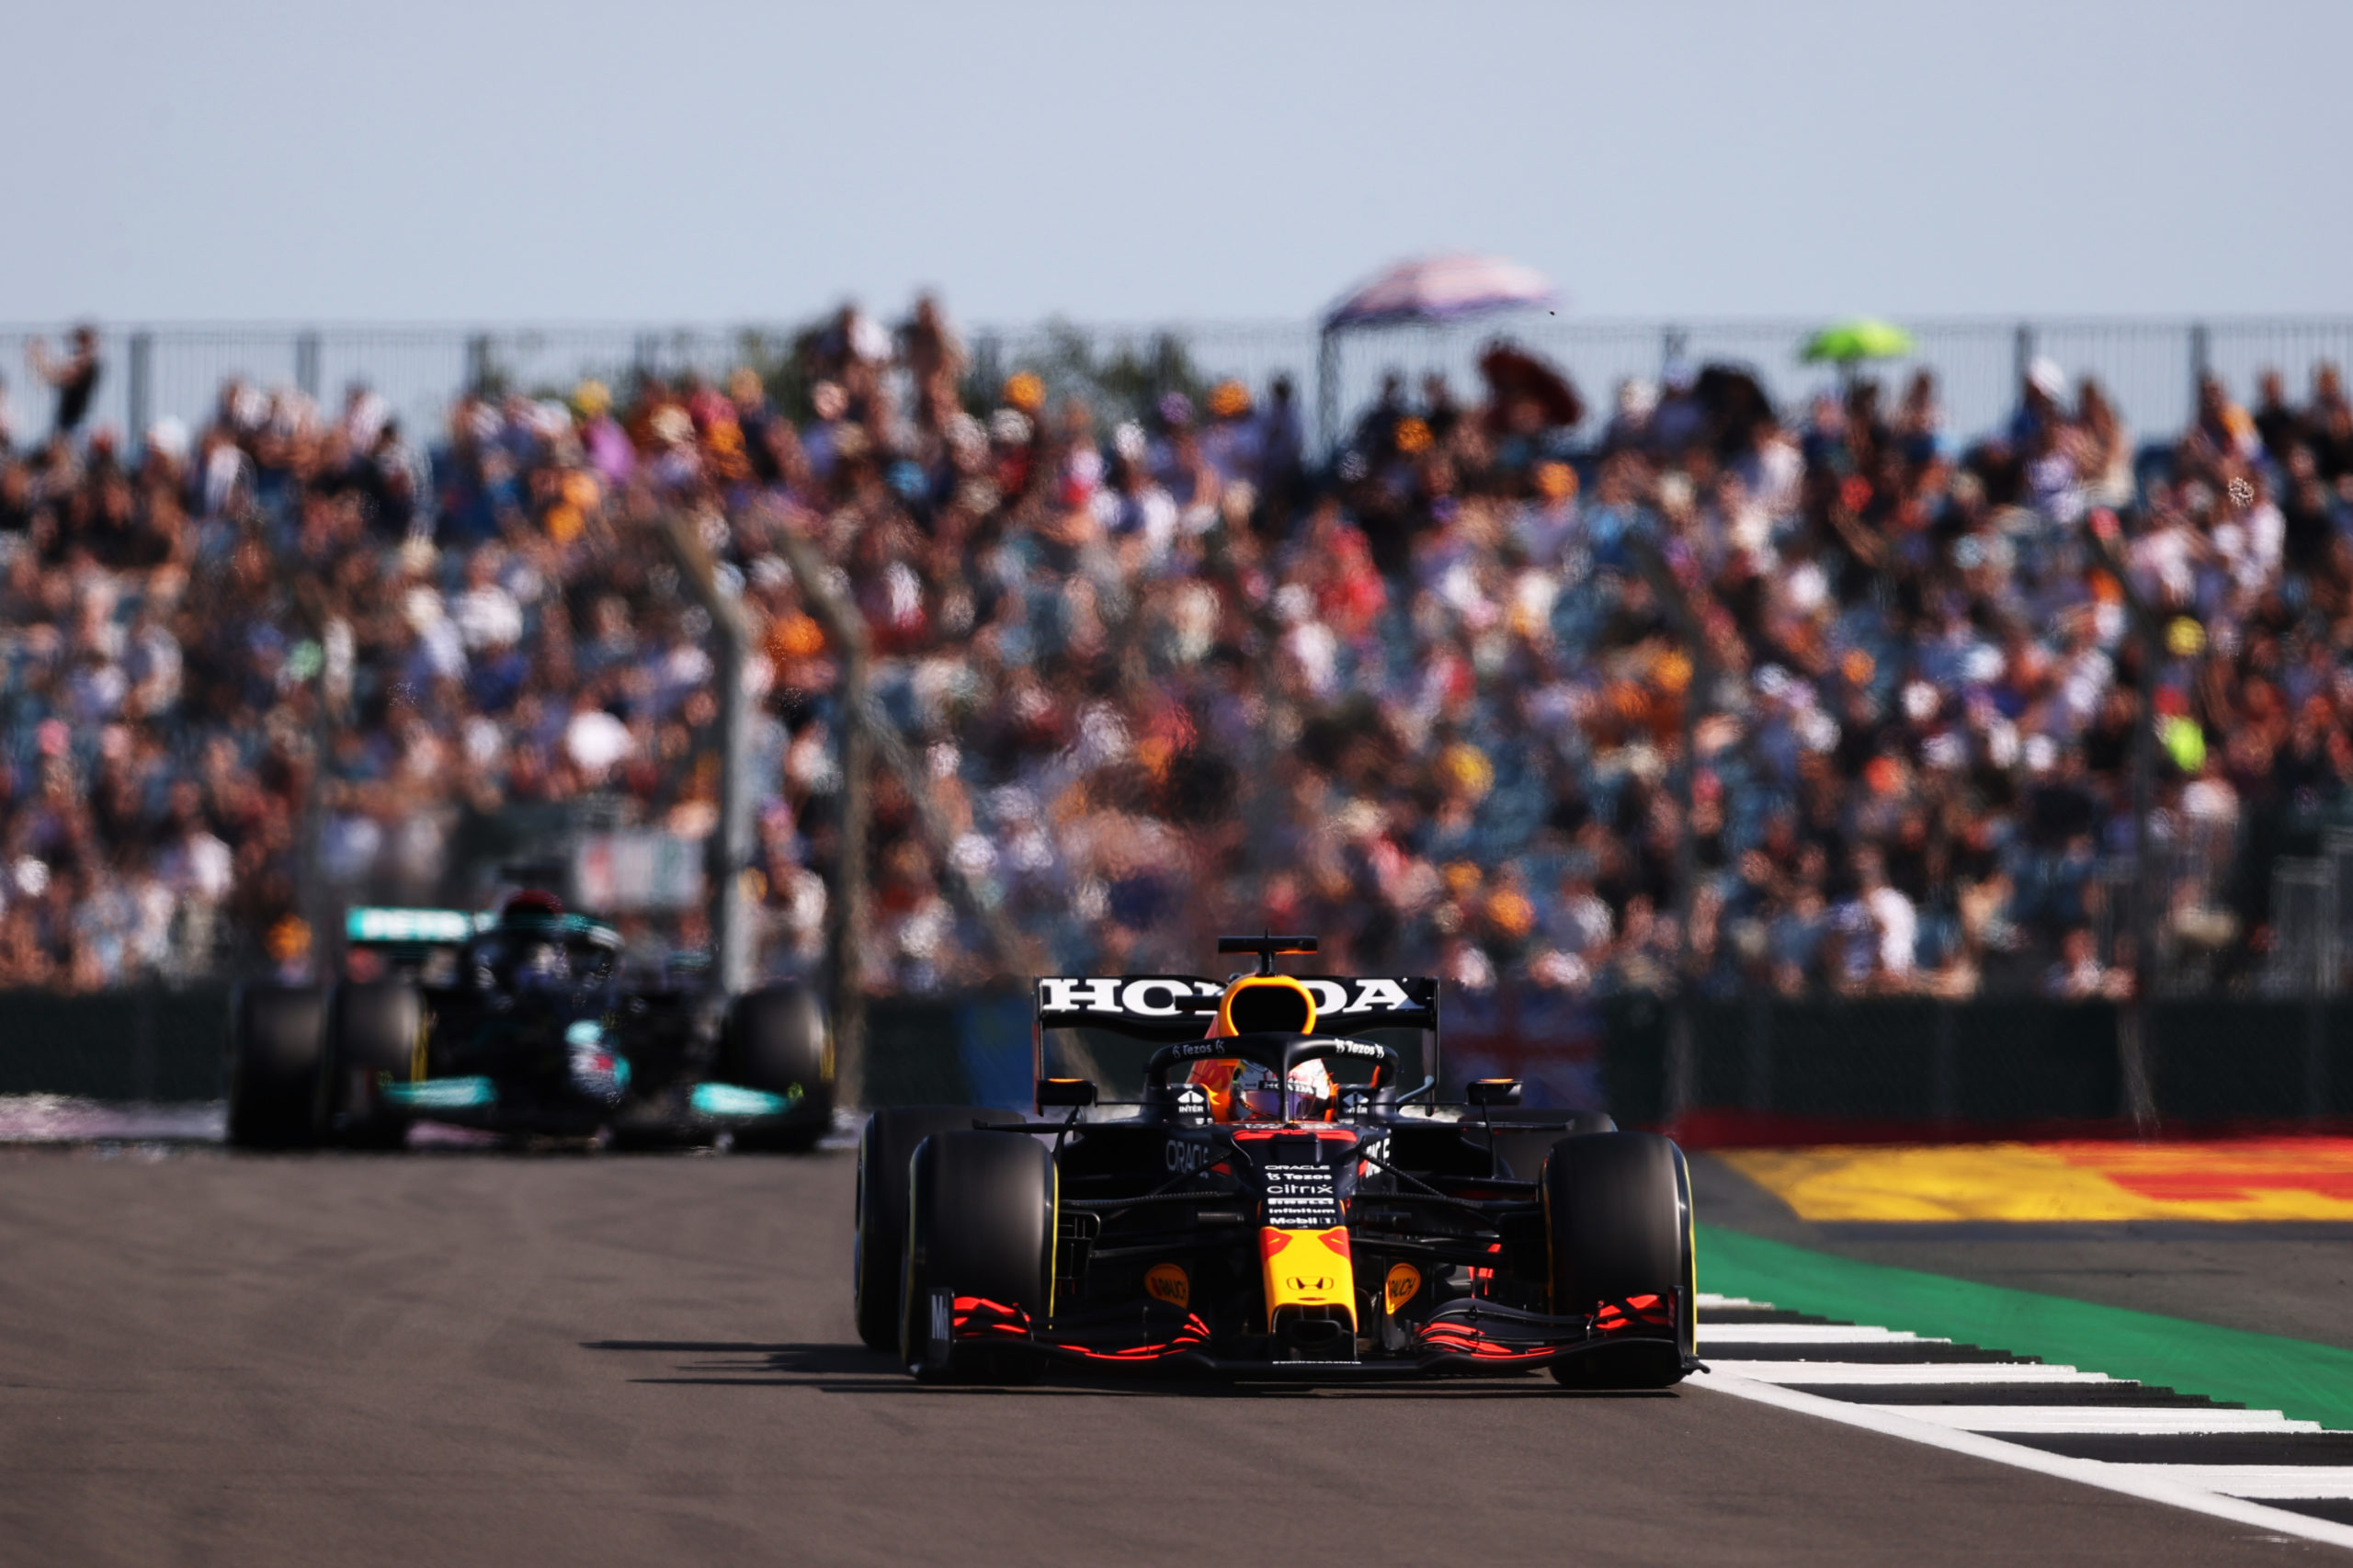 NORTHAMPTON, ENGLAND - JULY 17: Max Verstappen of the Netherlands driving the (33) Red Bull Racing RB16B Honda leads Lewis Hamilton of Great Britain driving the (44) Mercedes AMG Petronas F1 Team Mercedes W12 during the Sprint for the F1 Grand Prix of Great Britain at Silverstone on July 17, 2021 in Northampton, England. (Photo by Lars Baron/Getty Images) // Getty Images / Red Bull Content Pool  // SI202107170352 // Usage for editorial use only //